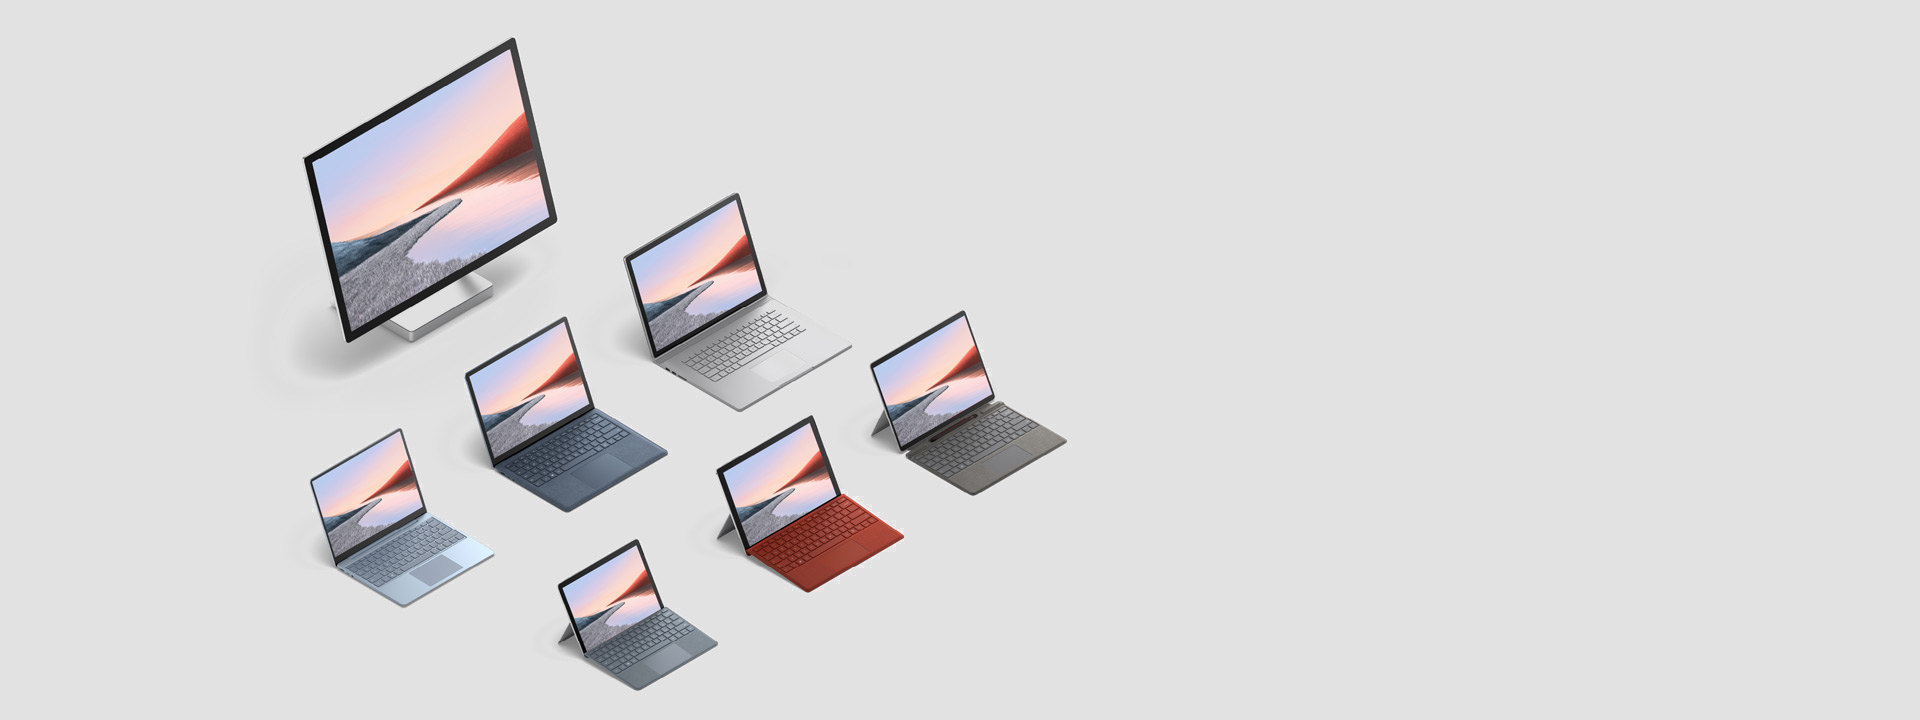 The full family of Surface devices in a variety of colors.